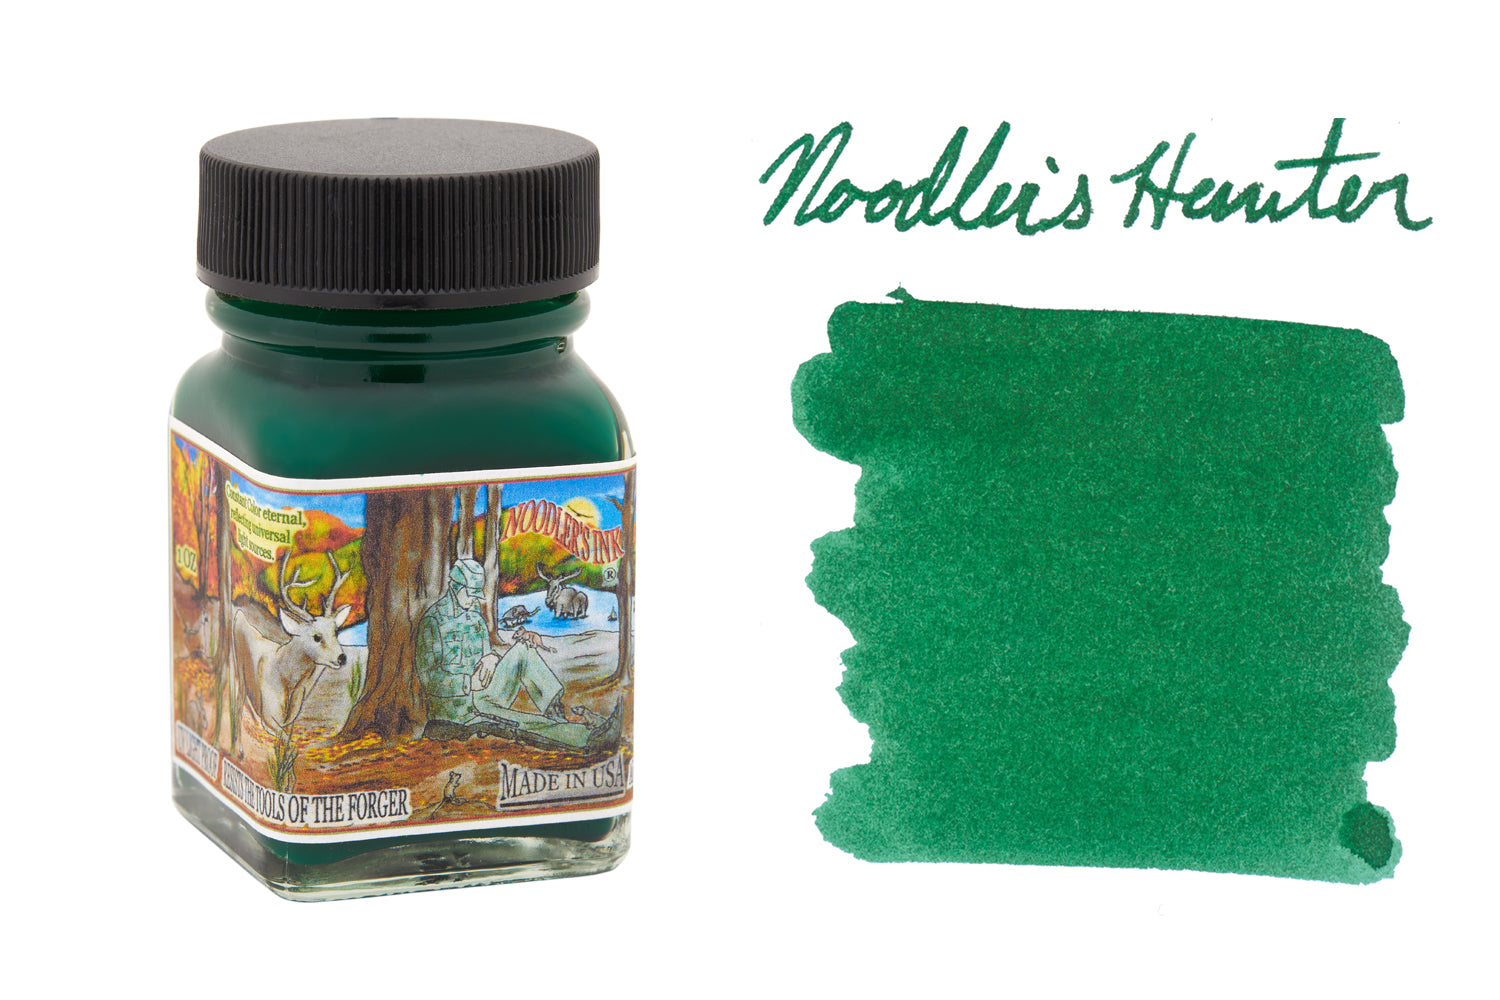 Noodler's Hunter - 1oz Bottled Ink